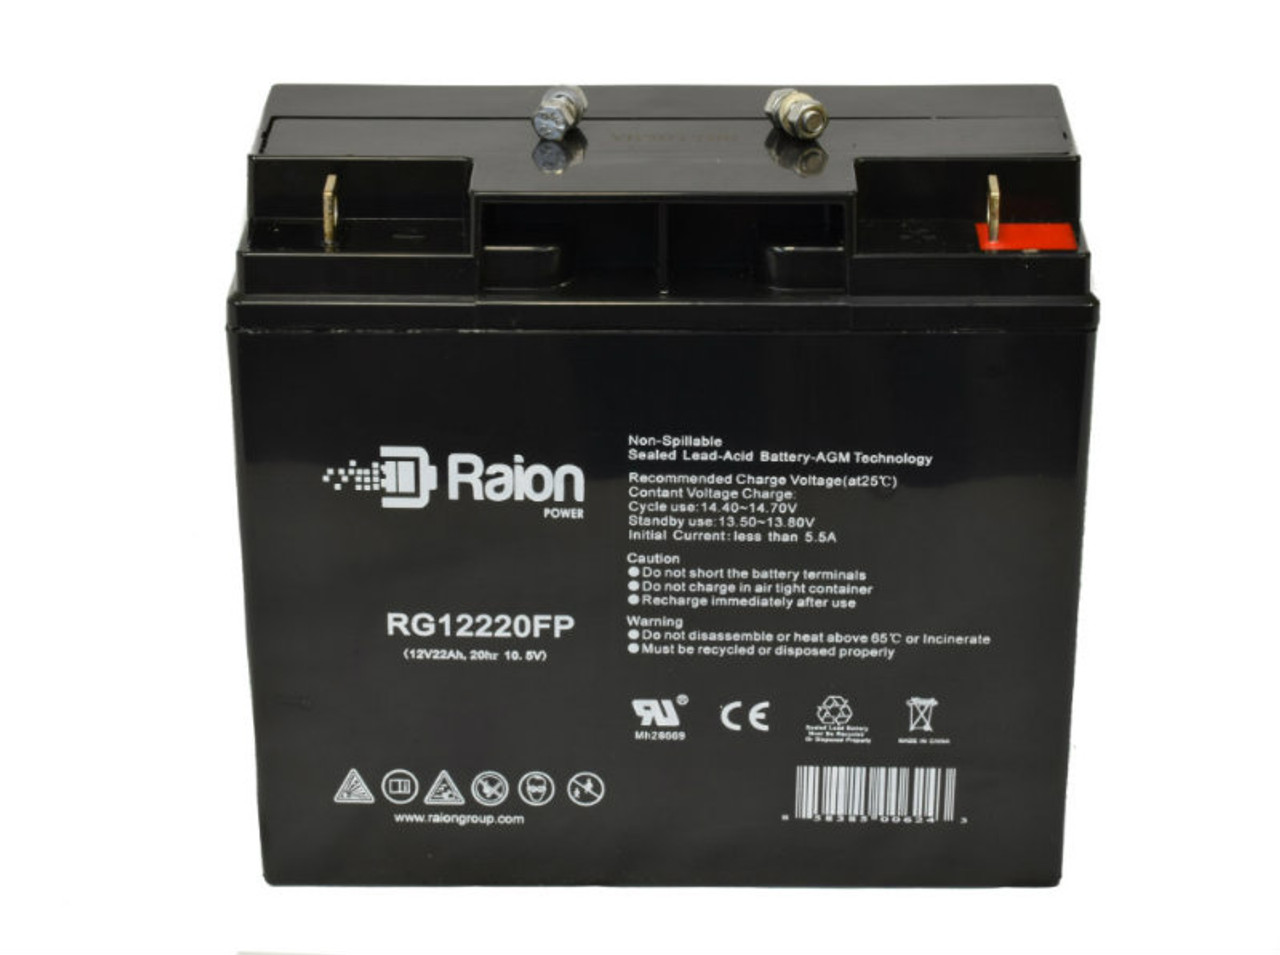 RG12220FP Sealed Lead Acid Battery Pack For Merits Pioneer 1 S235 Deluxe Mobility Scooter